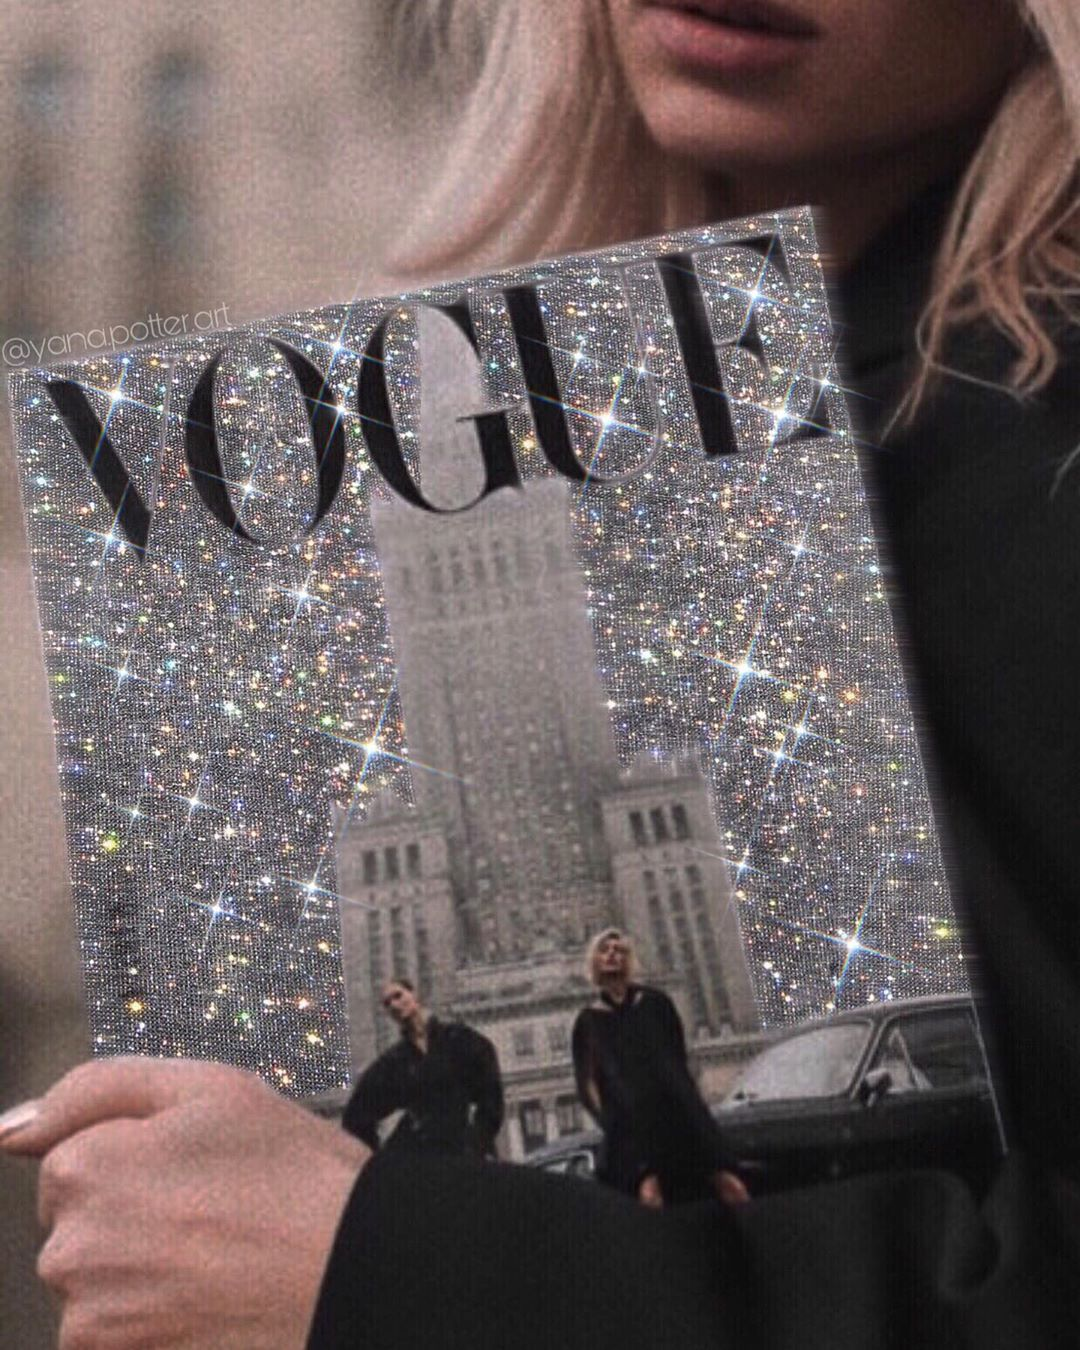 Vogue My Love May Be Someday Glittery Collageartists Artist Travel Instafashion Instagr Glitter Photography Glitter Art Aesthetic Collage